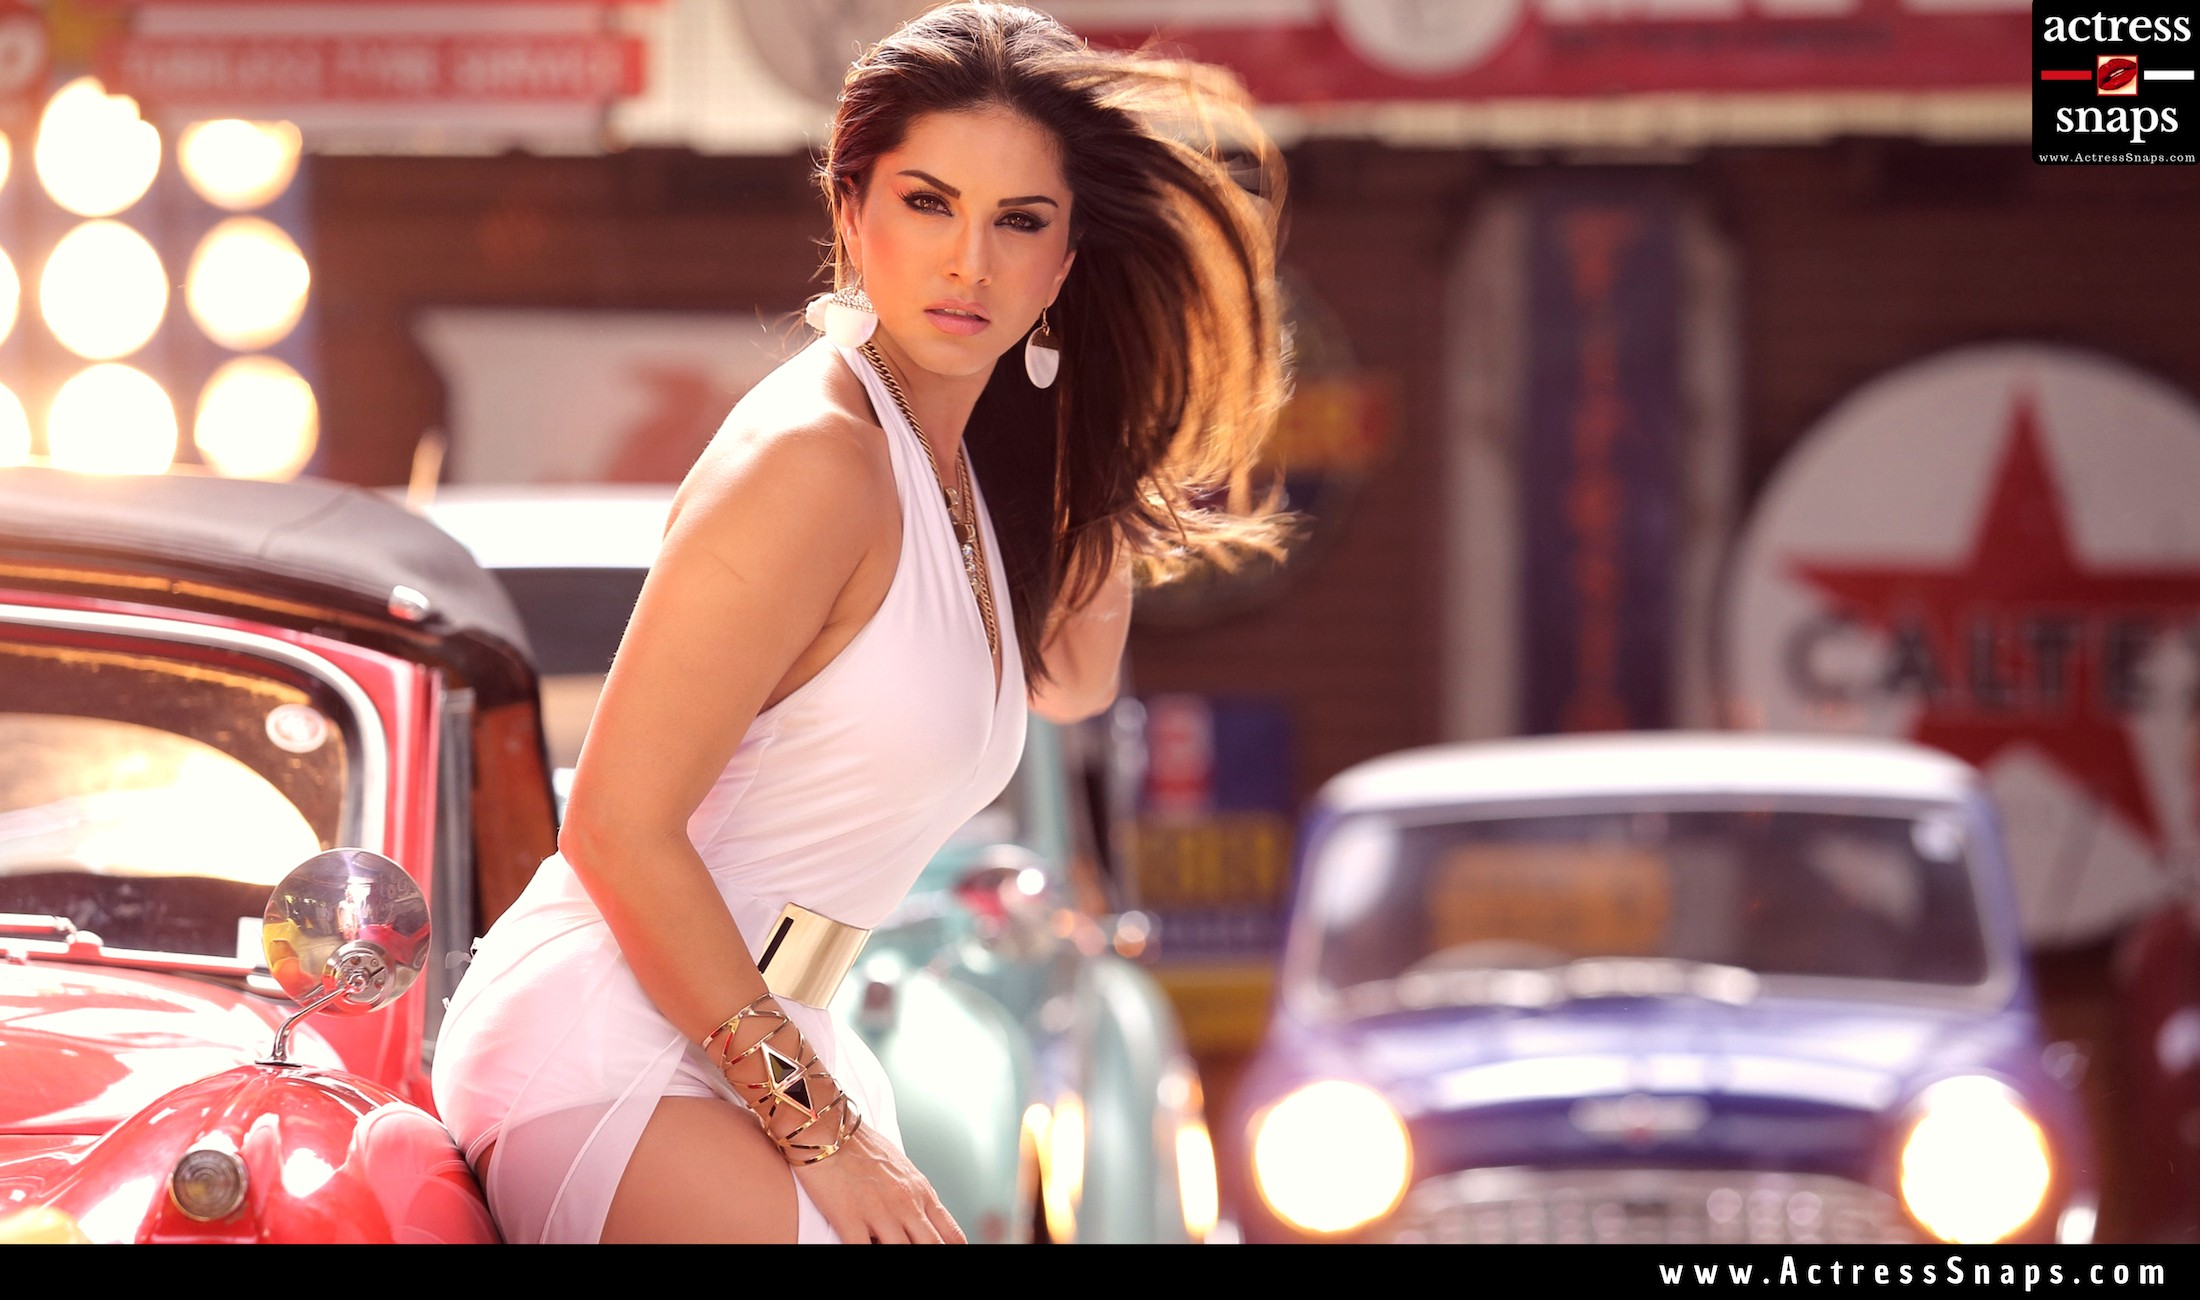 Sexy Sunny Leone GIFs Collections - Sexy Actress Pictures | Hot Actress Pictures - ActressSnaps.com